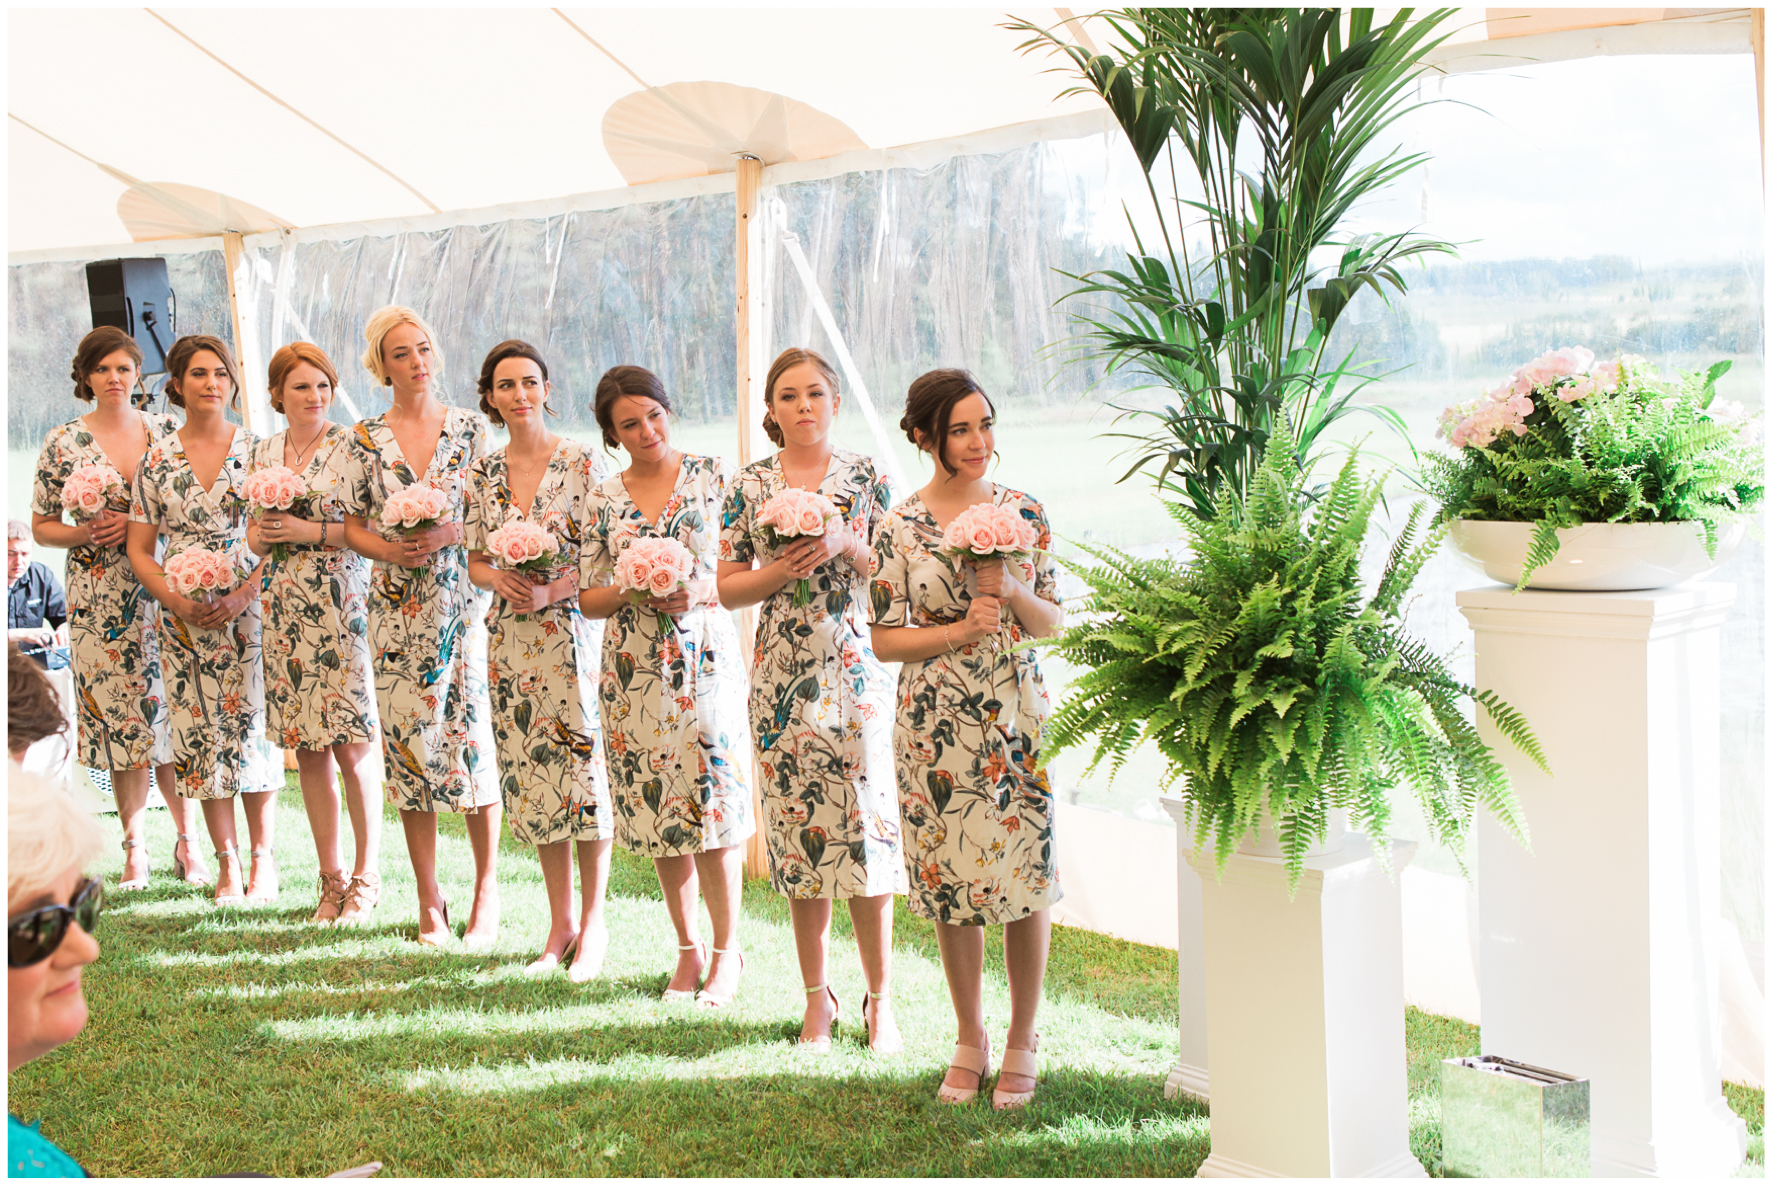 glamping wedding, Lucy Davenport Photography, home wedding, Sperry tent, PapaKata, bridesmaids, ferns, greenery